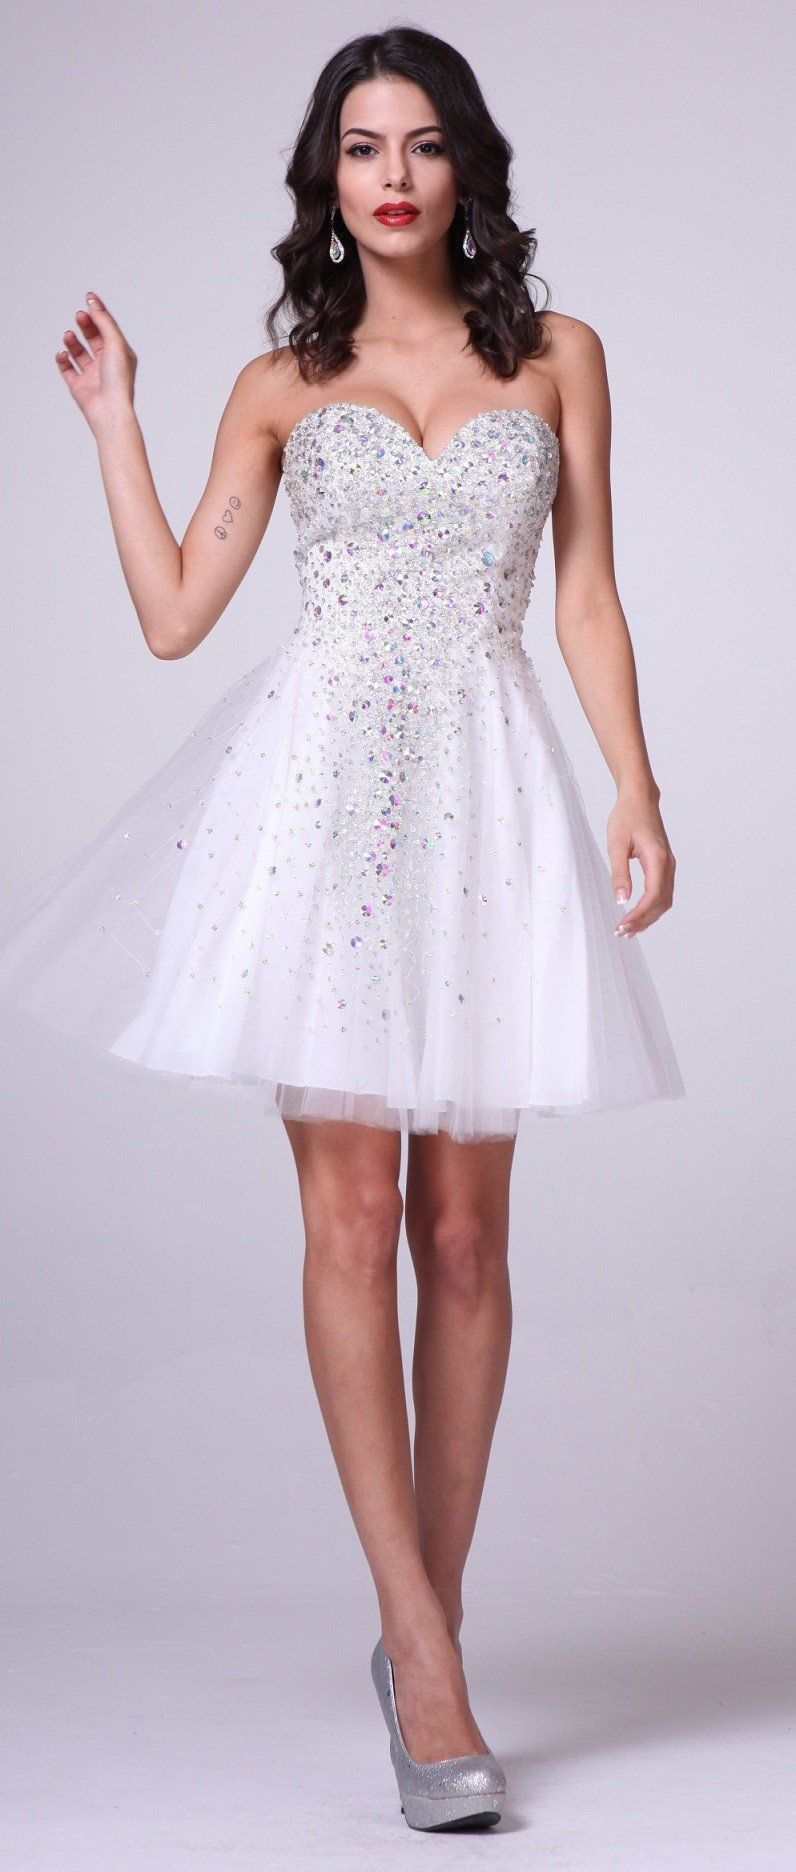 Short aline cocktail or party dress cdj products